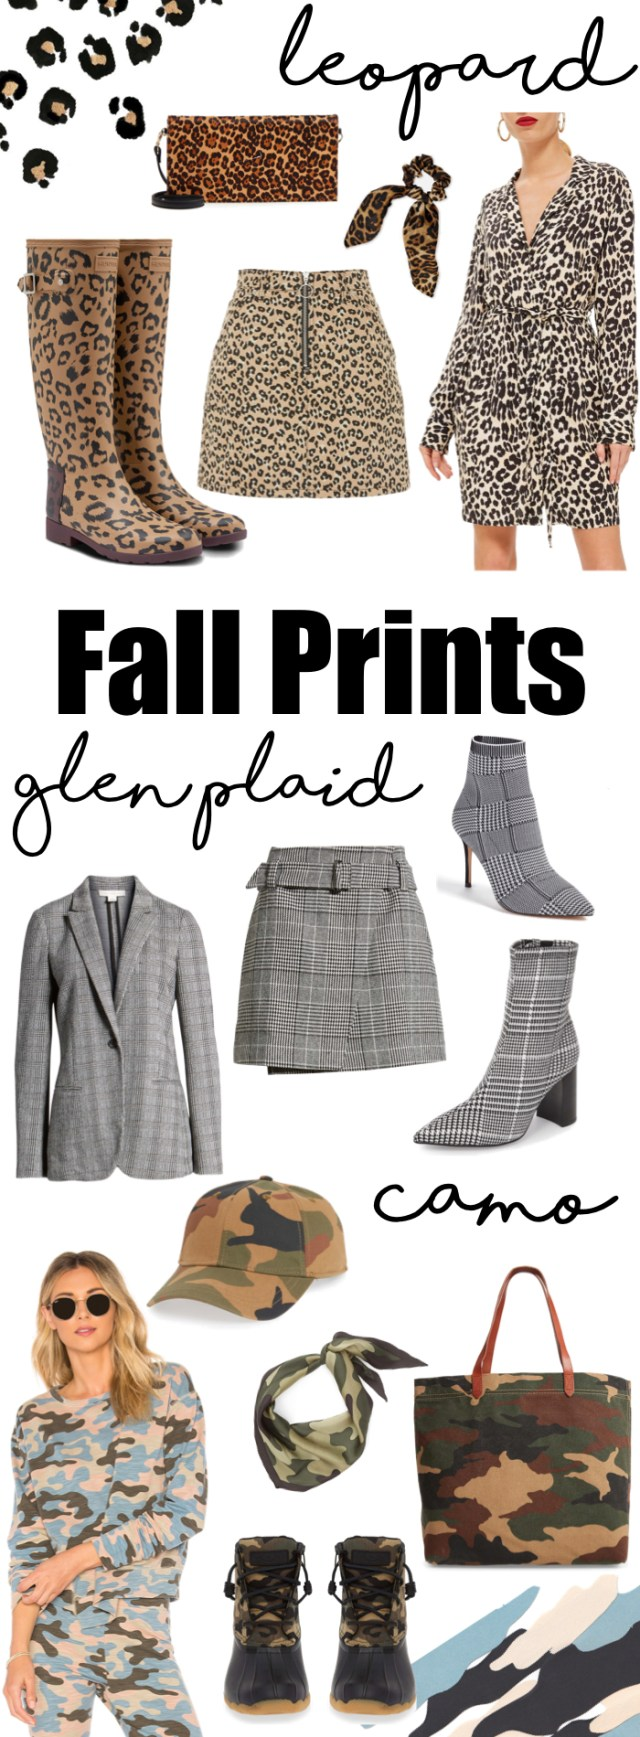 Fall Prints- Camo, Glen Plaid and Leopard